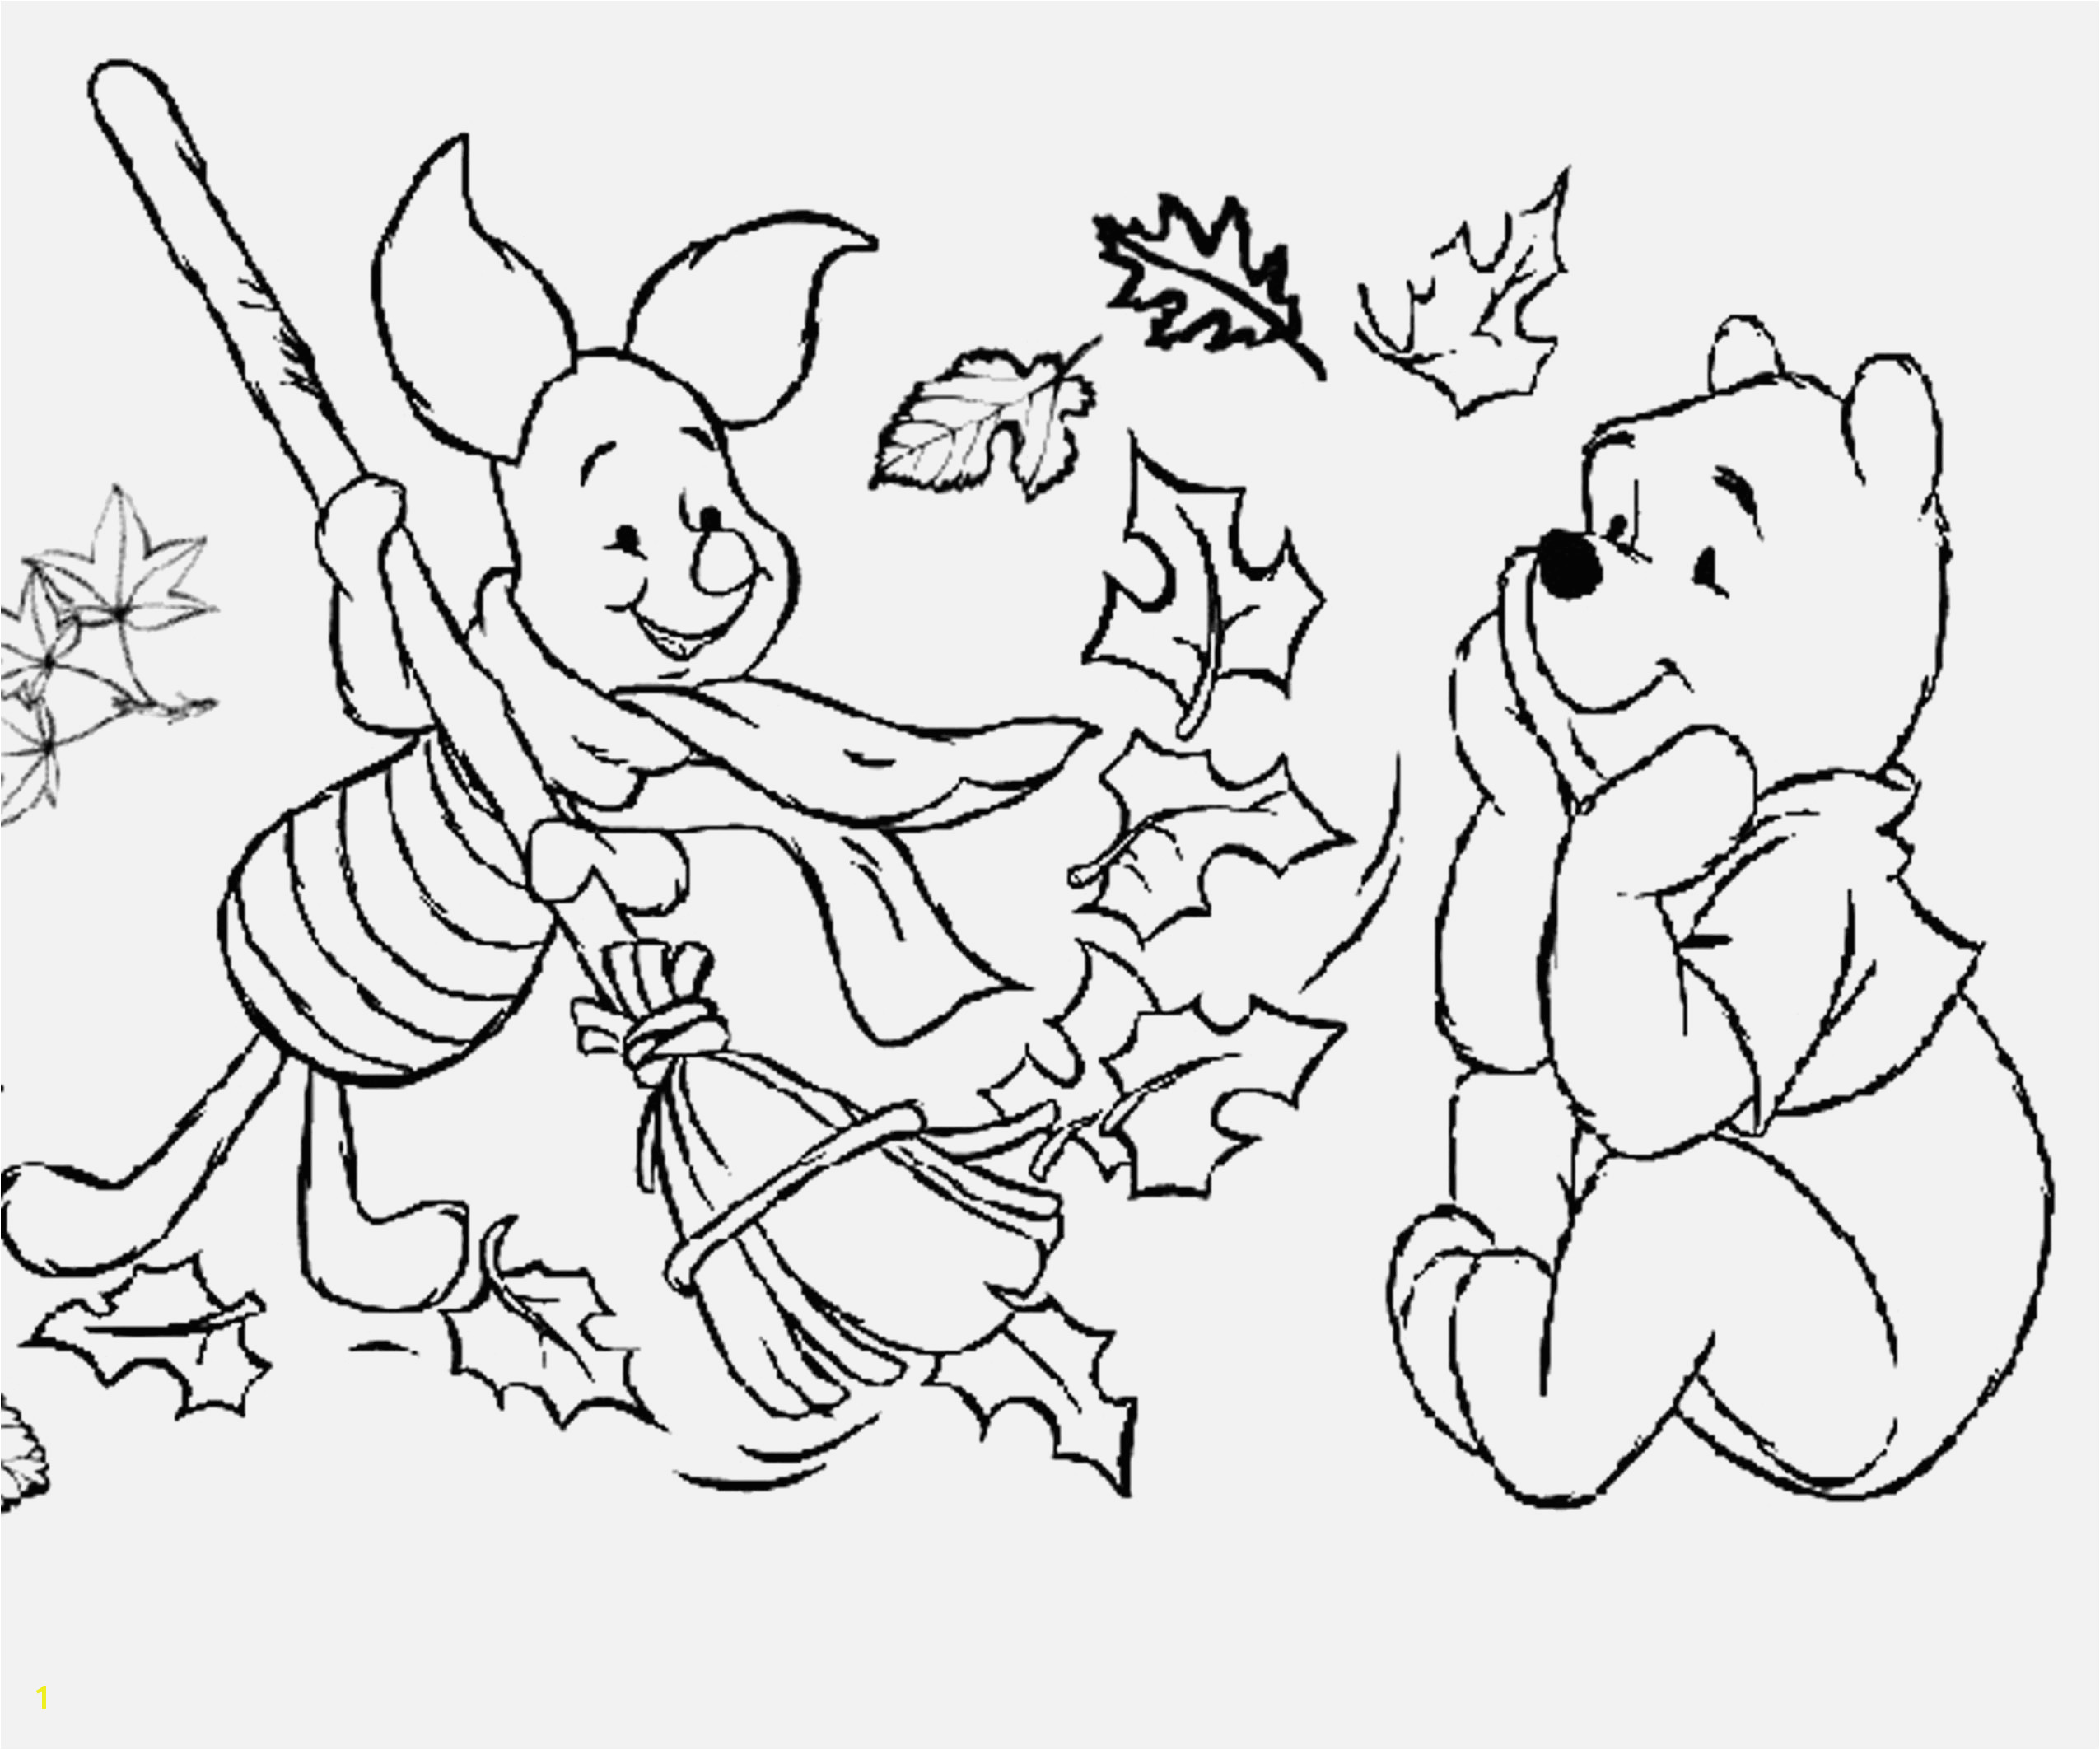 Easy Adult Coloring Pages Free Print Simple Adult Coloring Pages Elegant Best Coloring Page Adult Od Kids